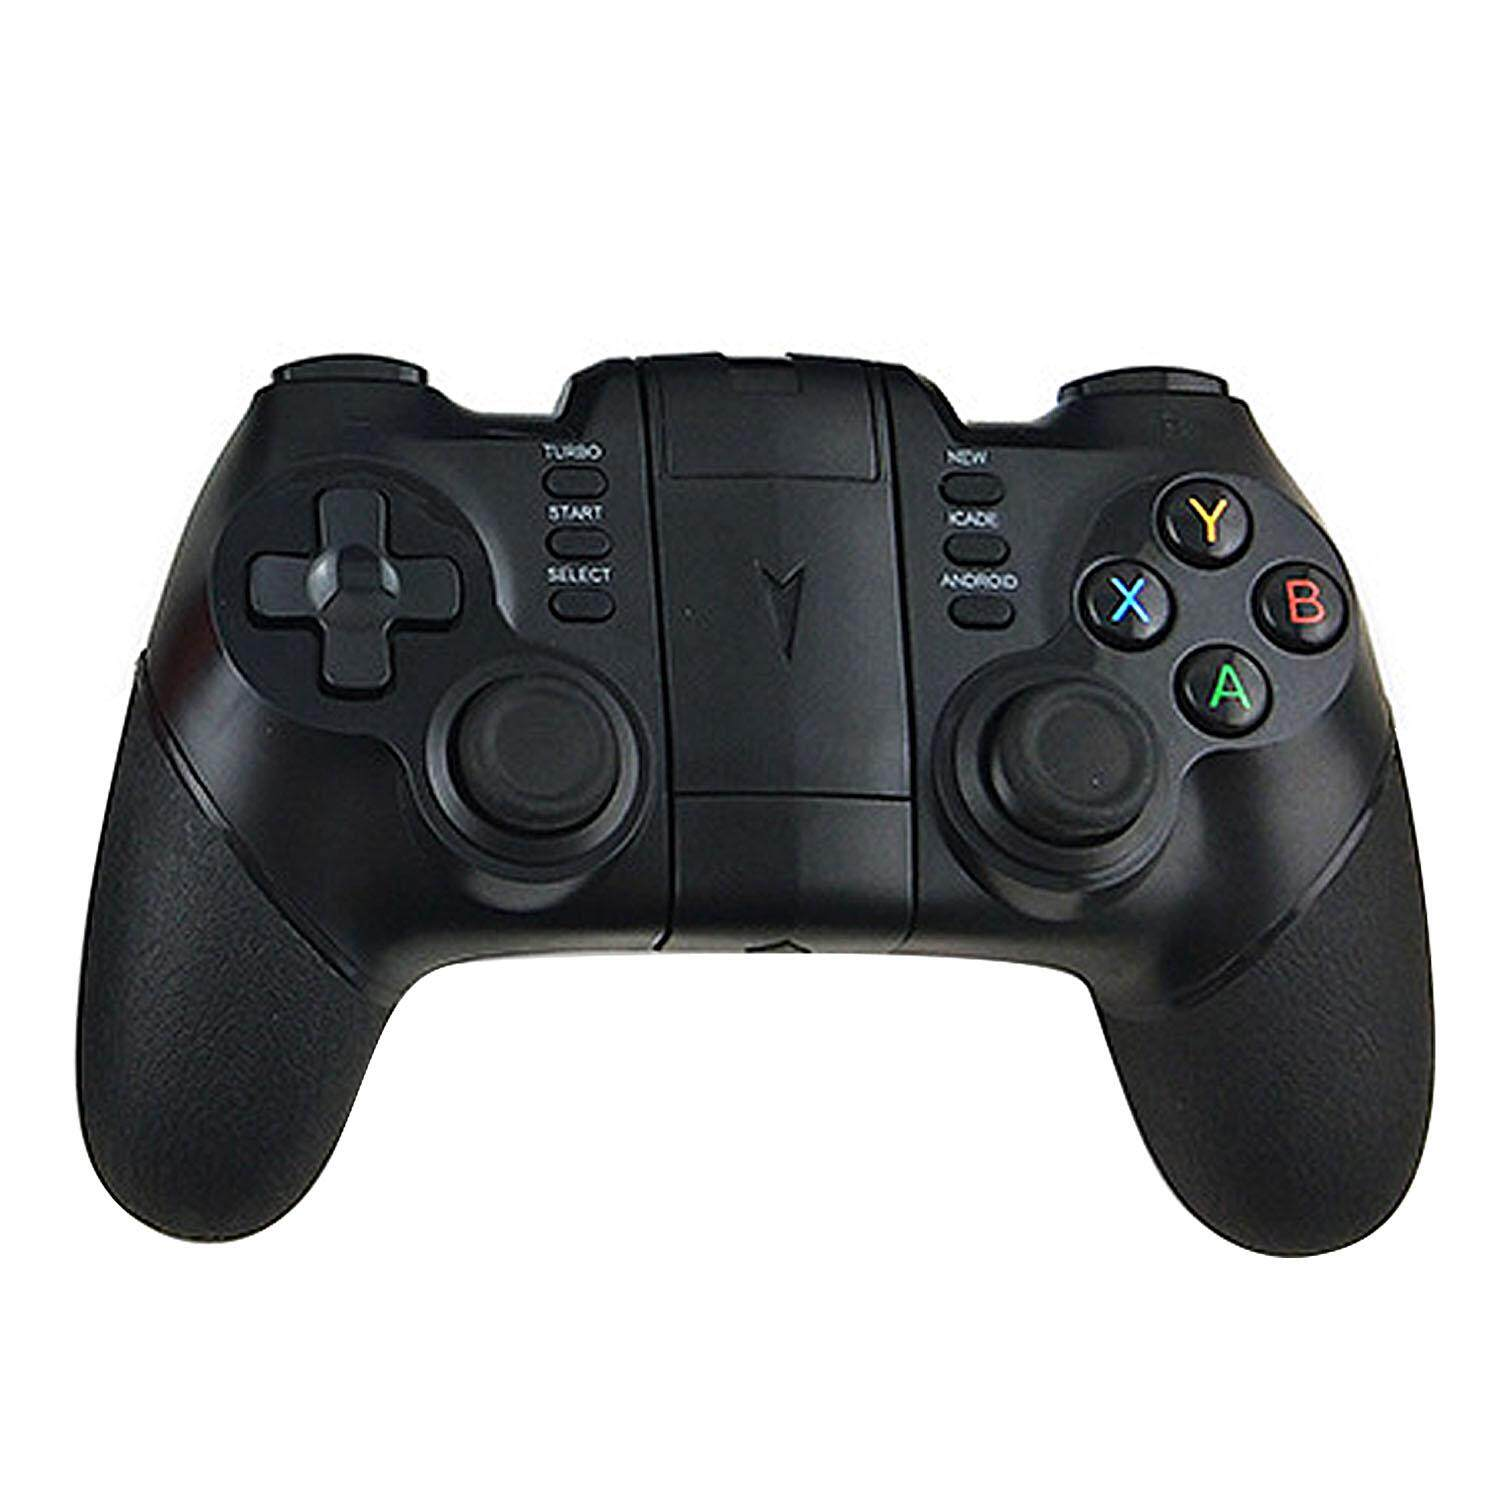 Wireless Bluetooth Gaming Controller Gamepad Joystick With Turbo Function Compatible With Android Ios Iphone Huawei Samsung Xiaomi Black By Stoneky.